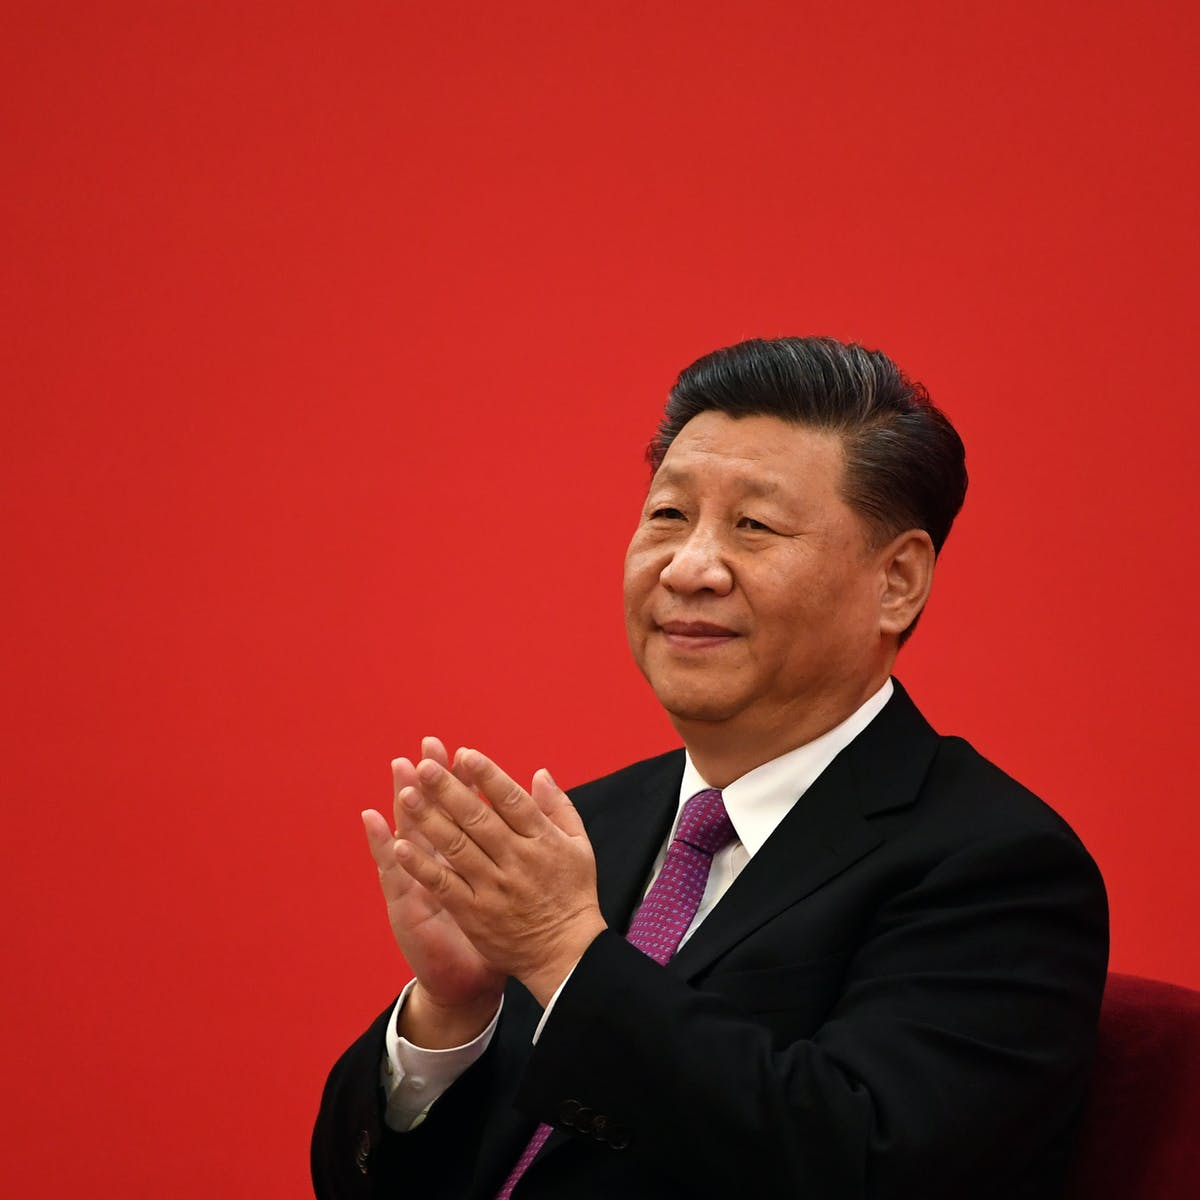 How Vulnerable Is Xi Jinping Over Coronavirus In Today S China There Are Few To Hold Him To Account